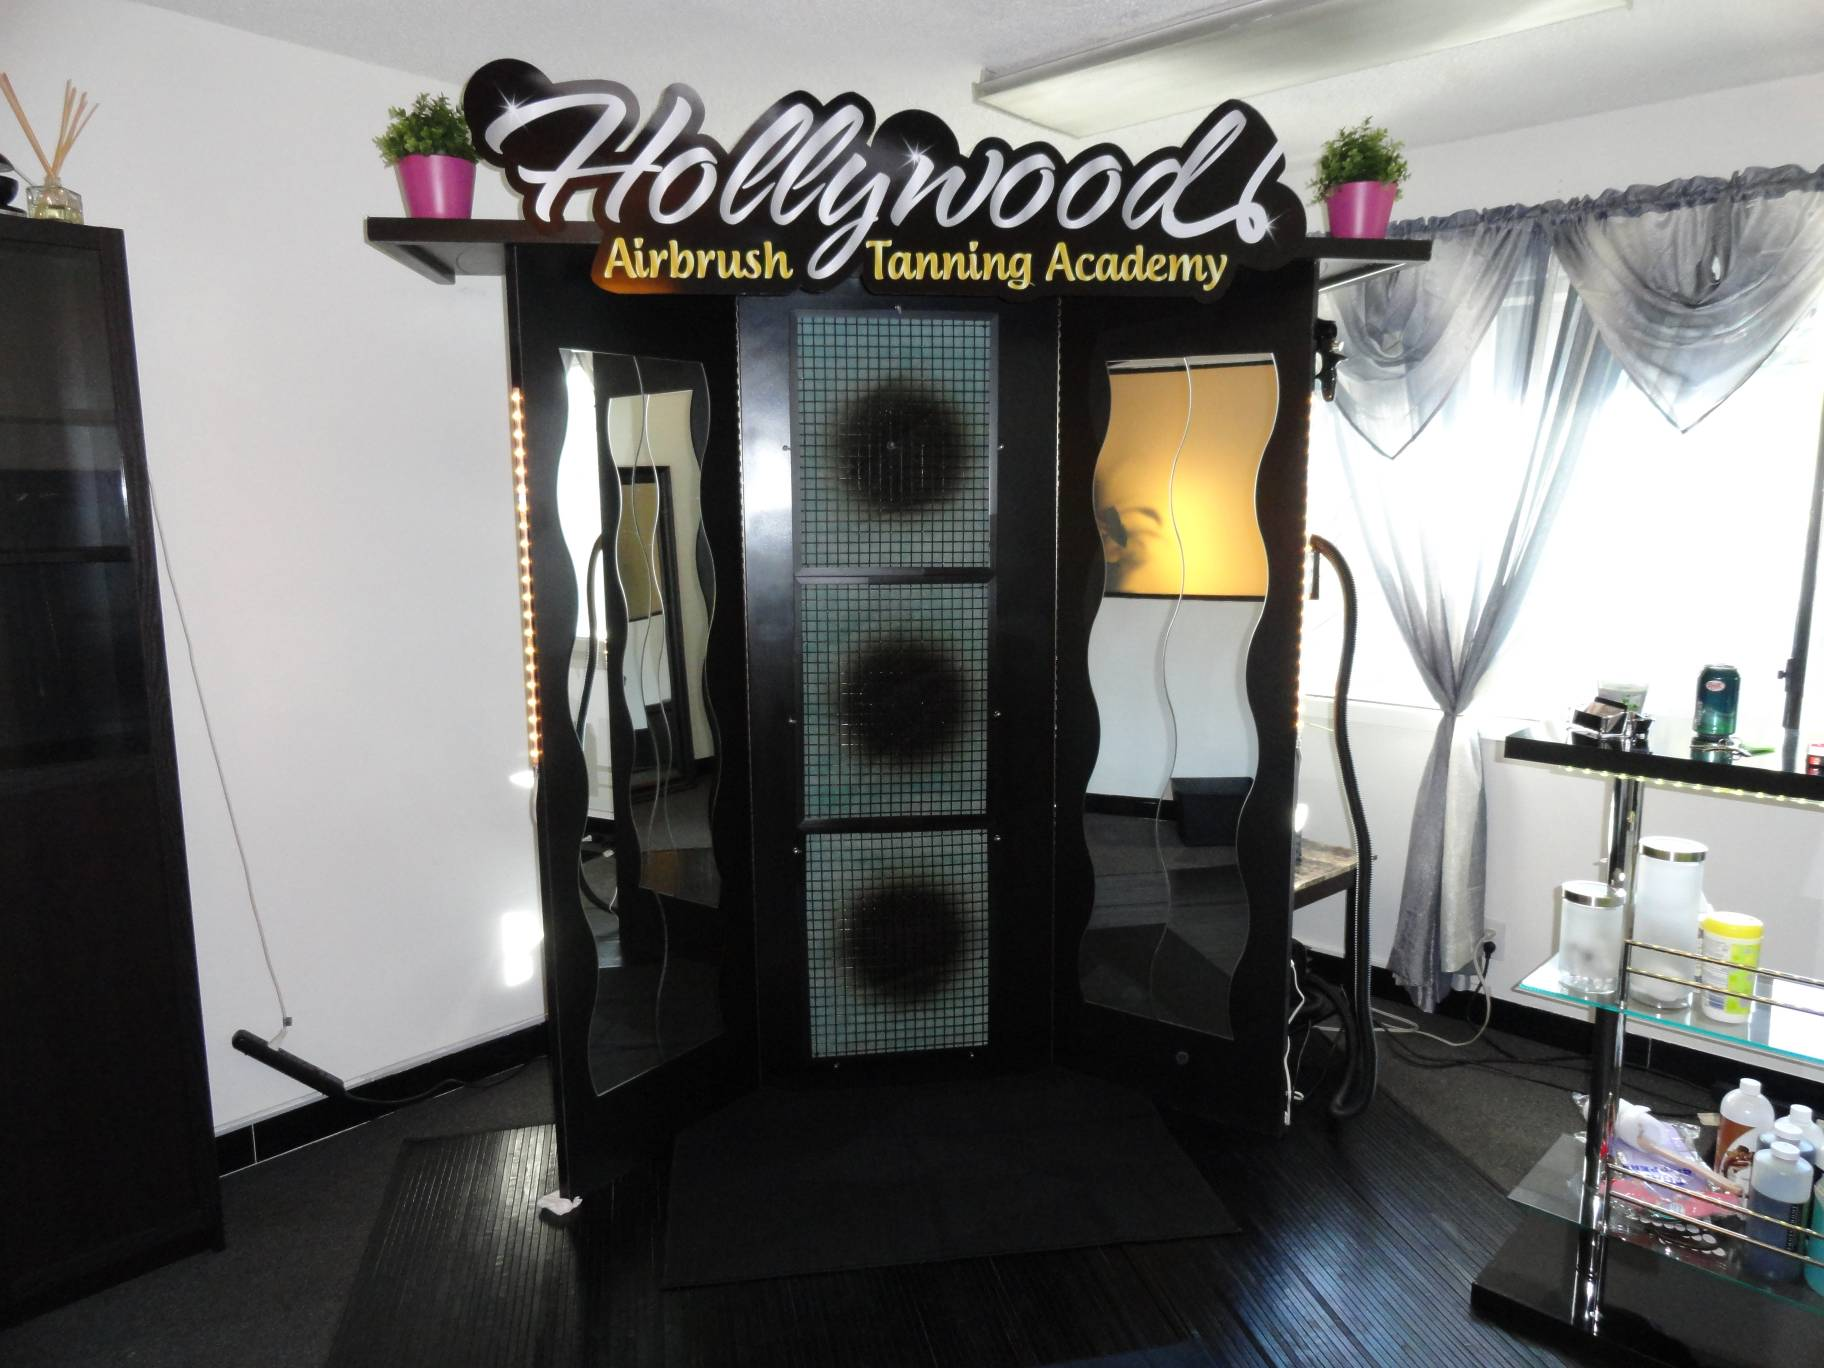 Hollywood Airbrush Tanning Academy Announces Hands-On Airbrush Tanning ...